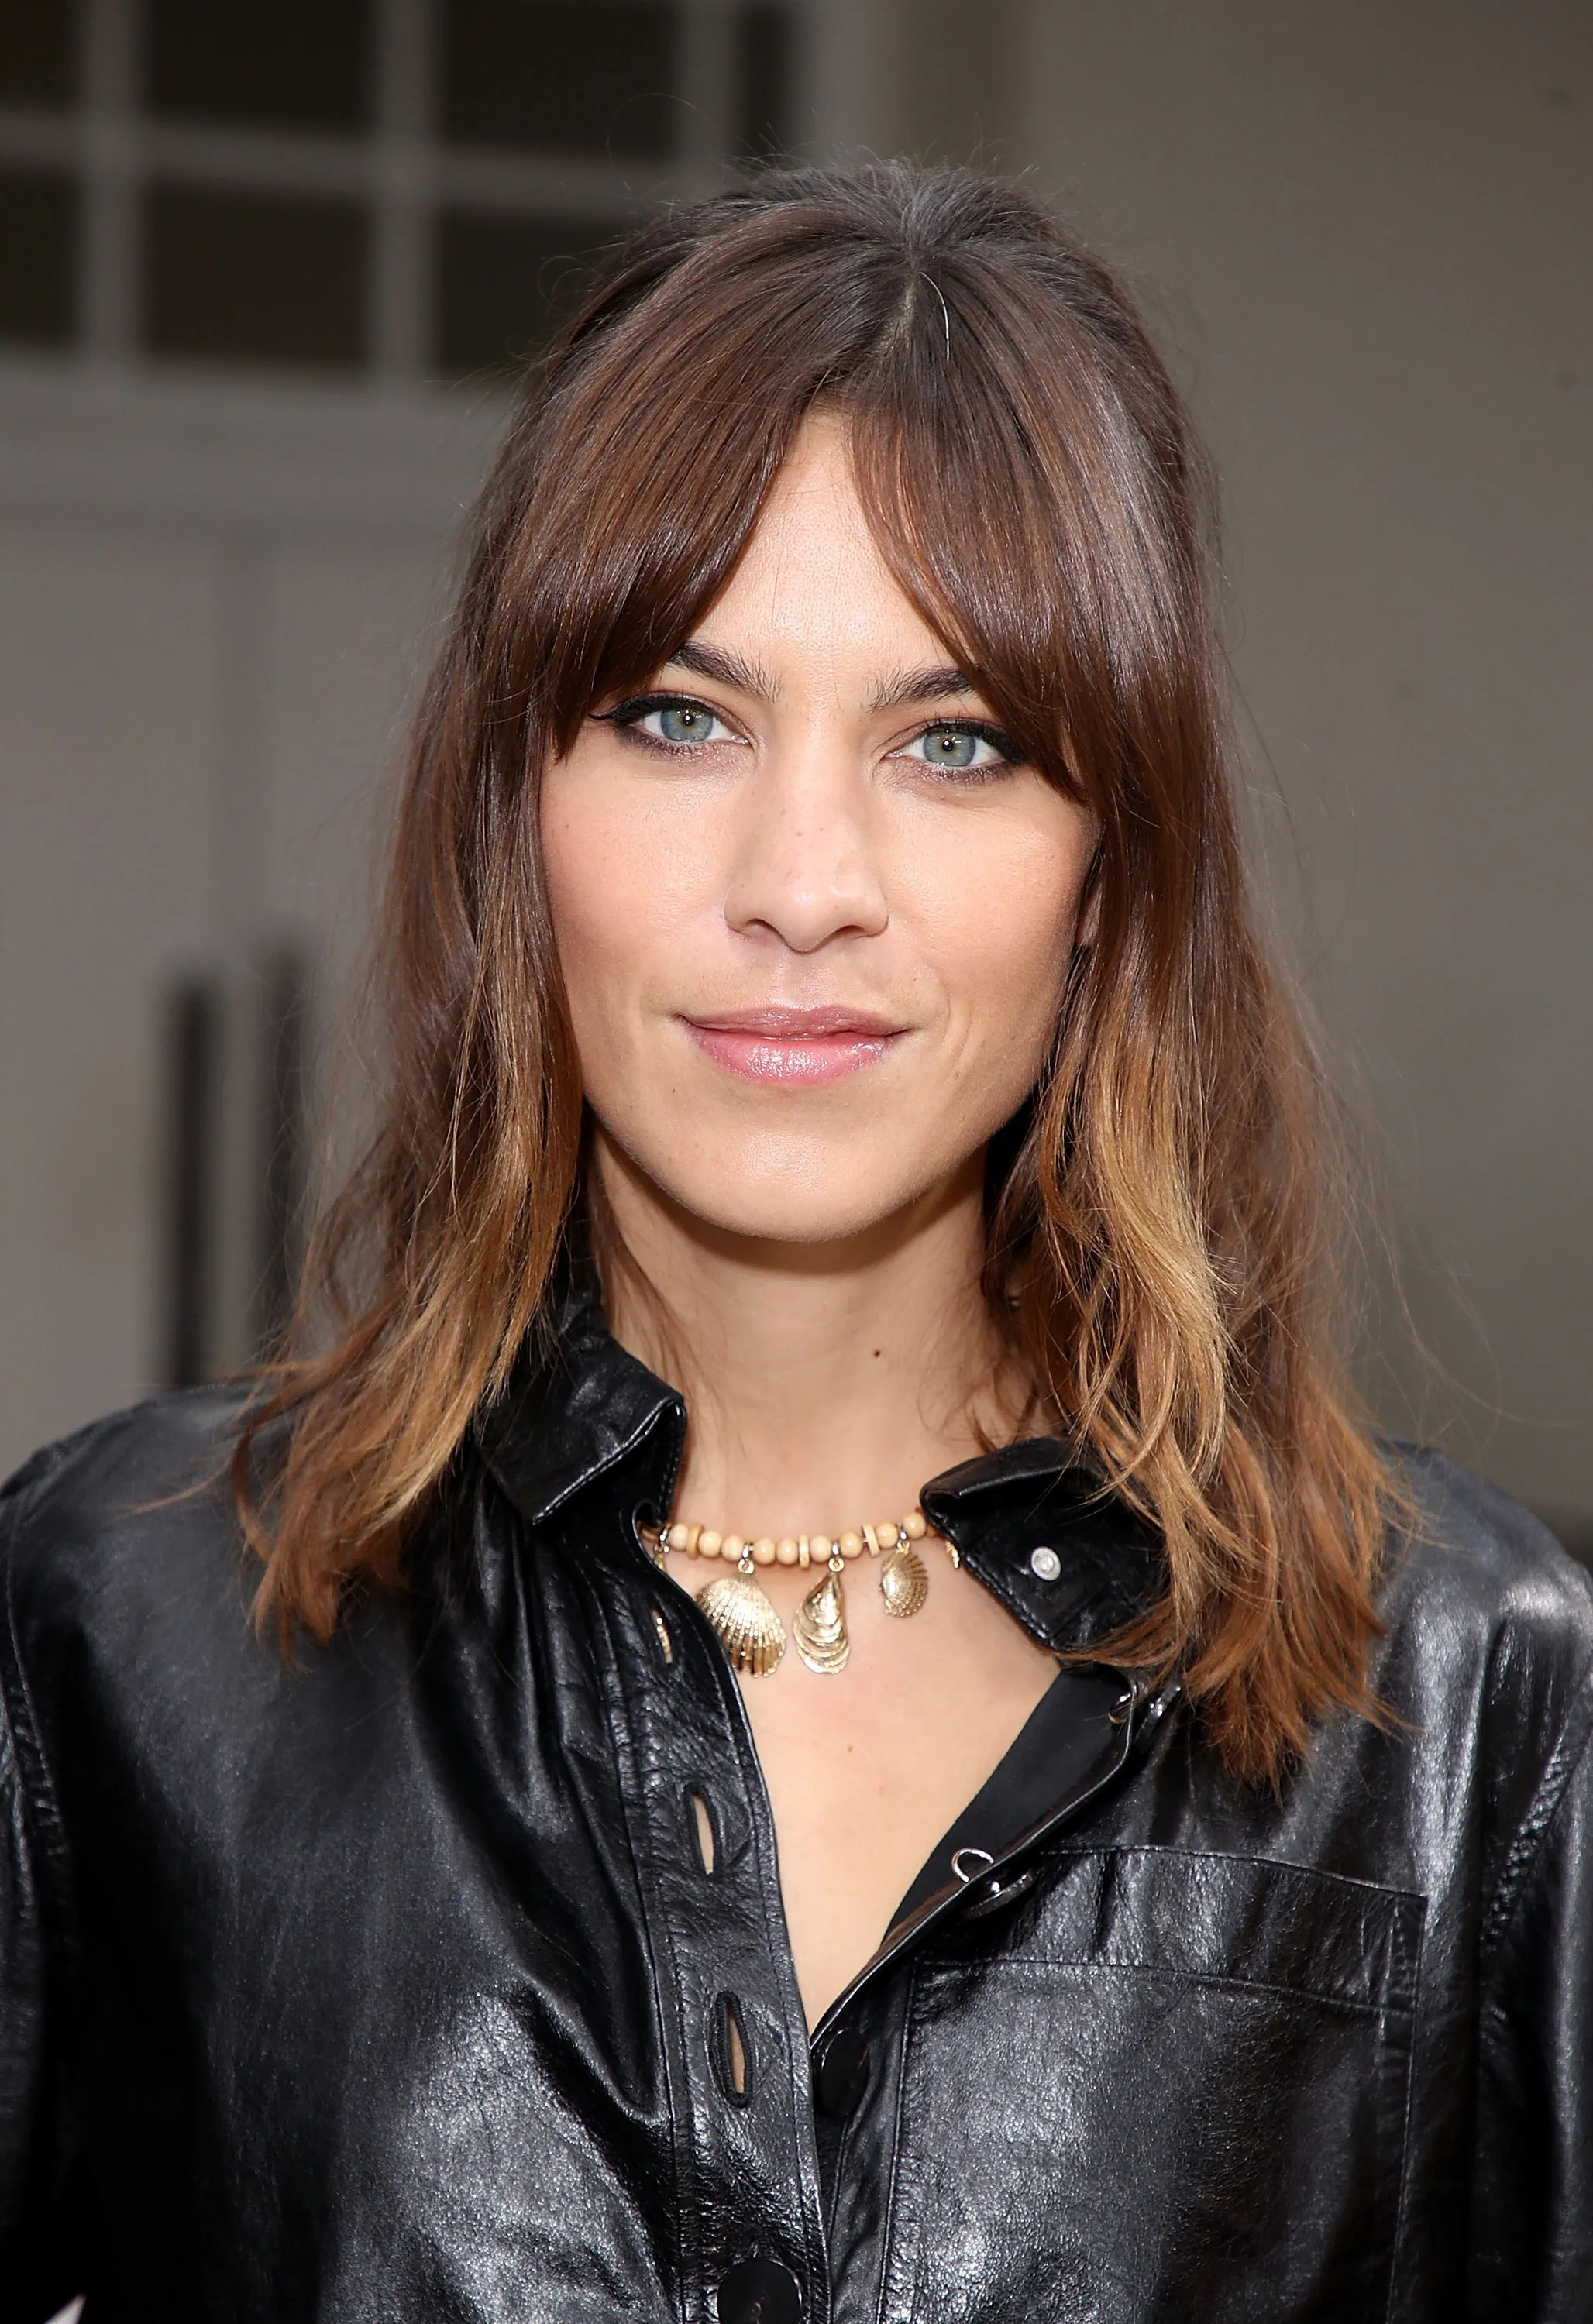 Curtain Bangs Are Trending  Heres How to Wear Them  Allure